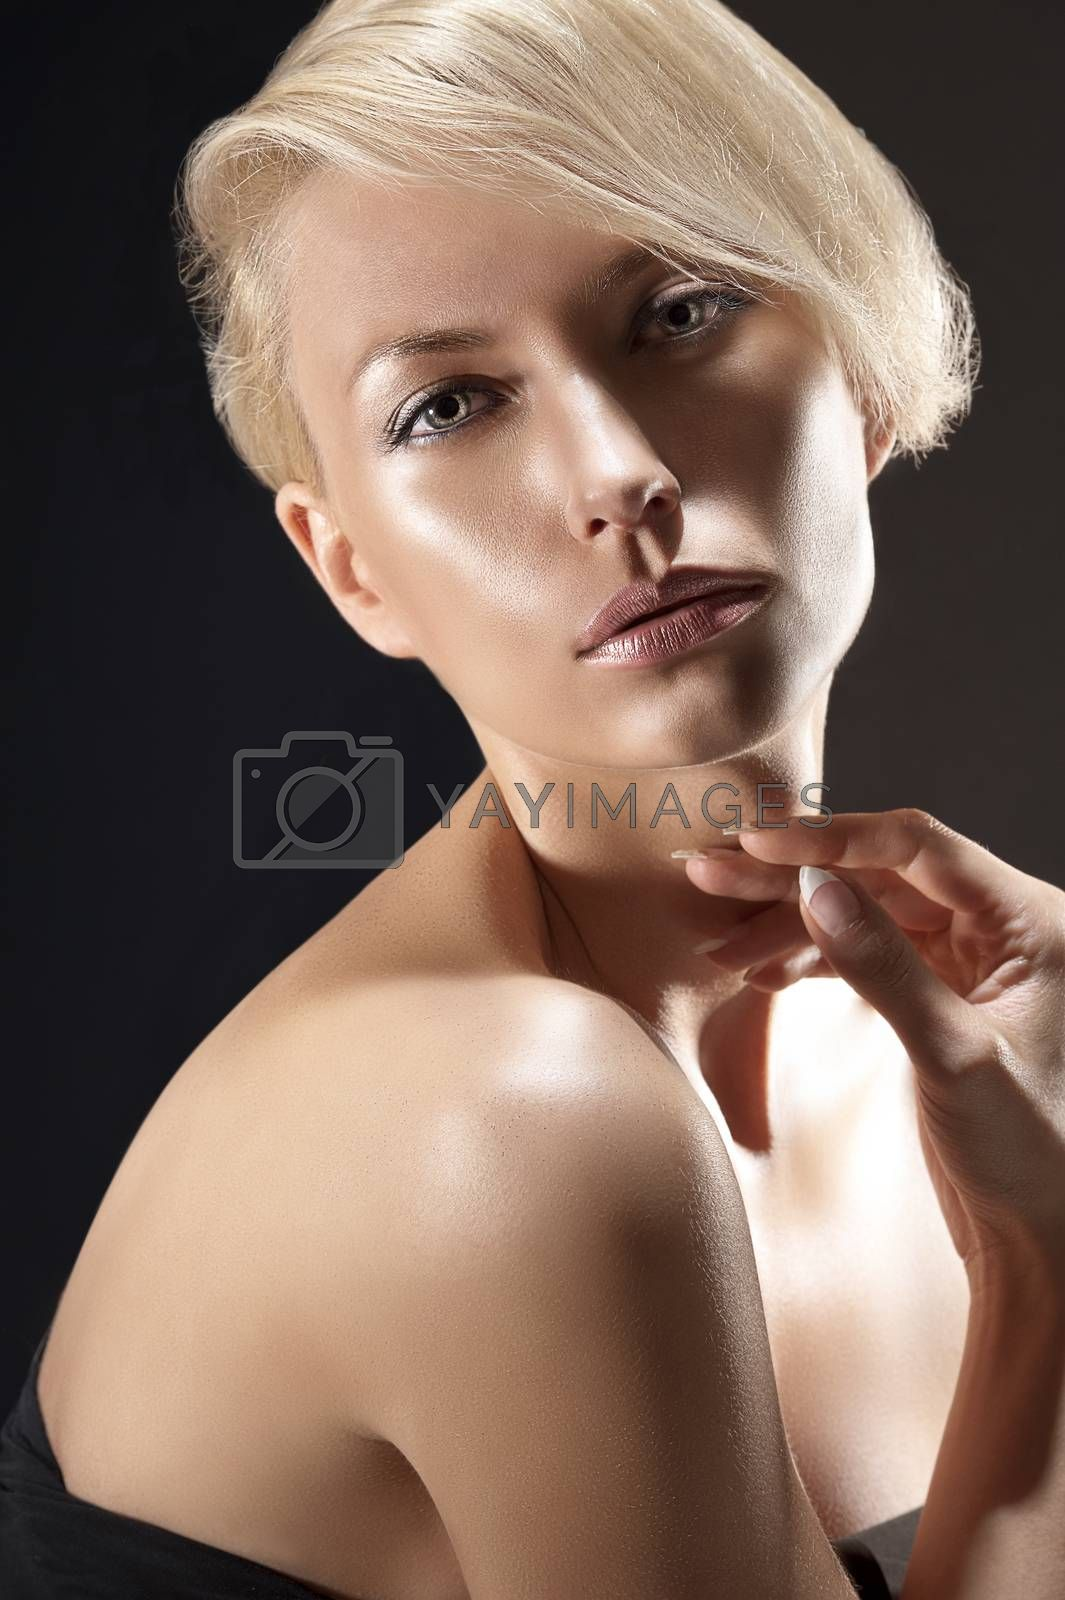 Royalty free image of beauty portrait of a gorgeous blonde by fotoCD